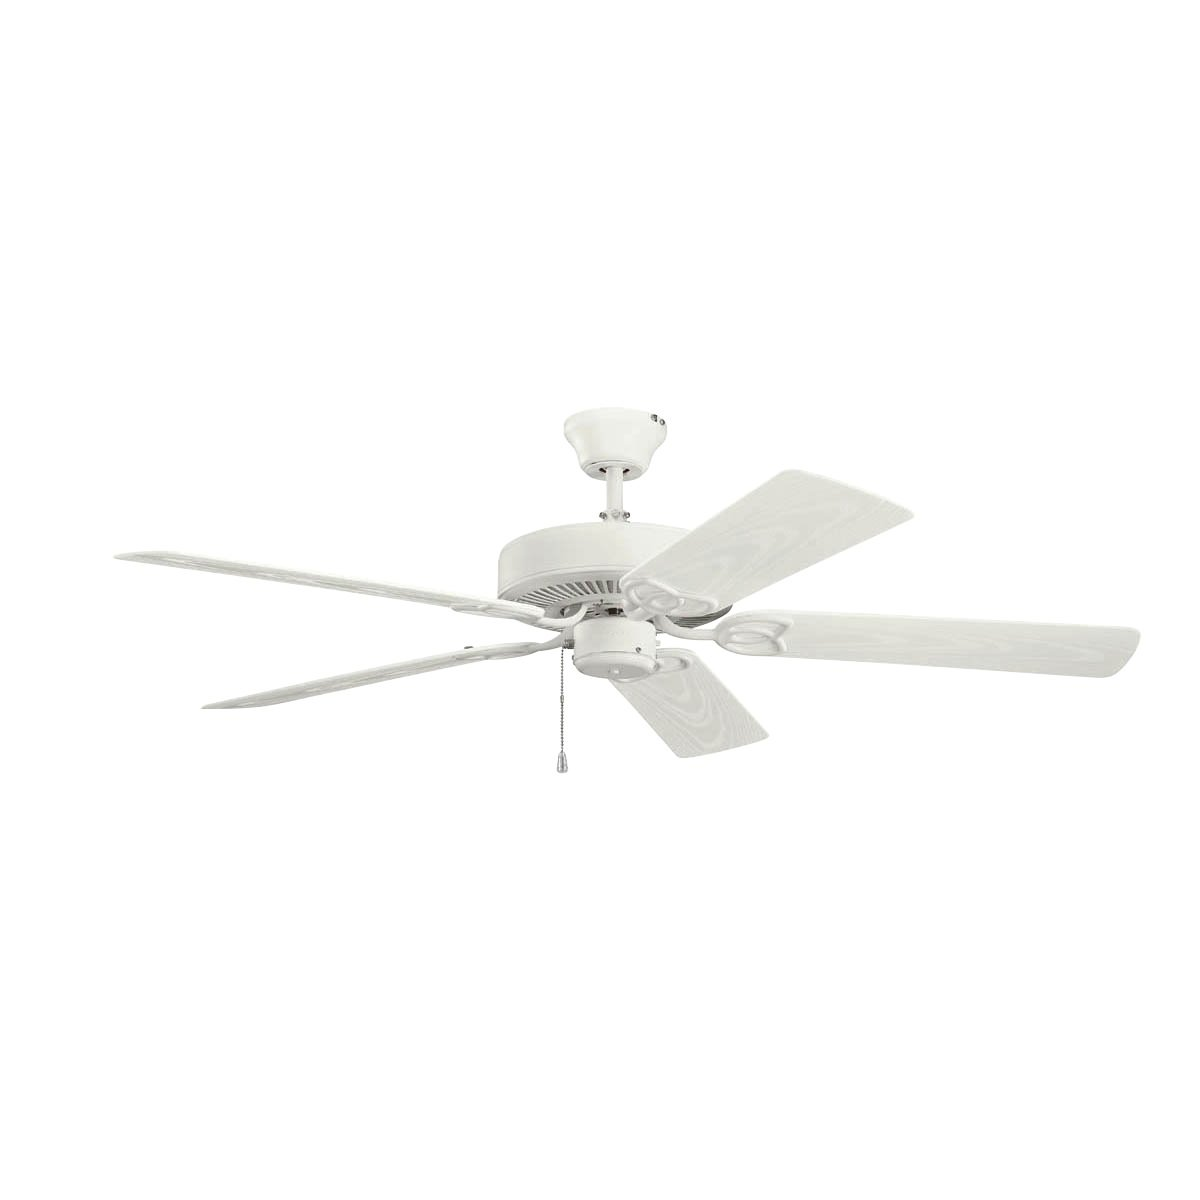 Kichler Lighting 401SNW Basics Patio 52IN 5-Blade Damp-Rated Ceiling Fan, Satin Natural White Finish with Satin Natural White ABS Blades